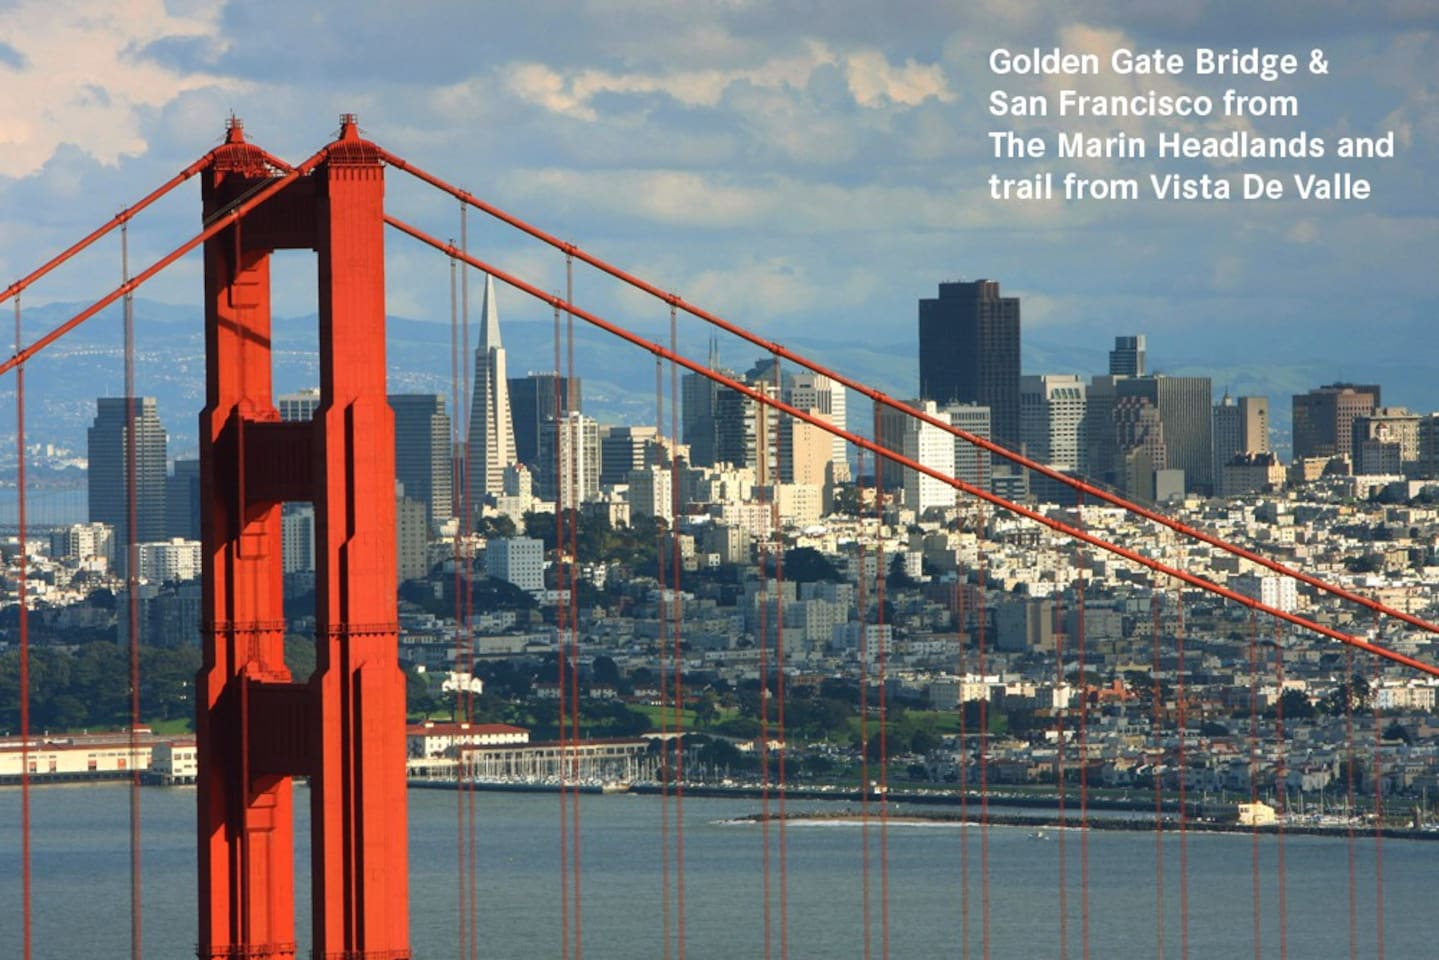 You can actually hike to this spot from Vista De Valle.